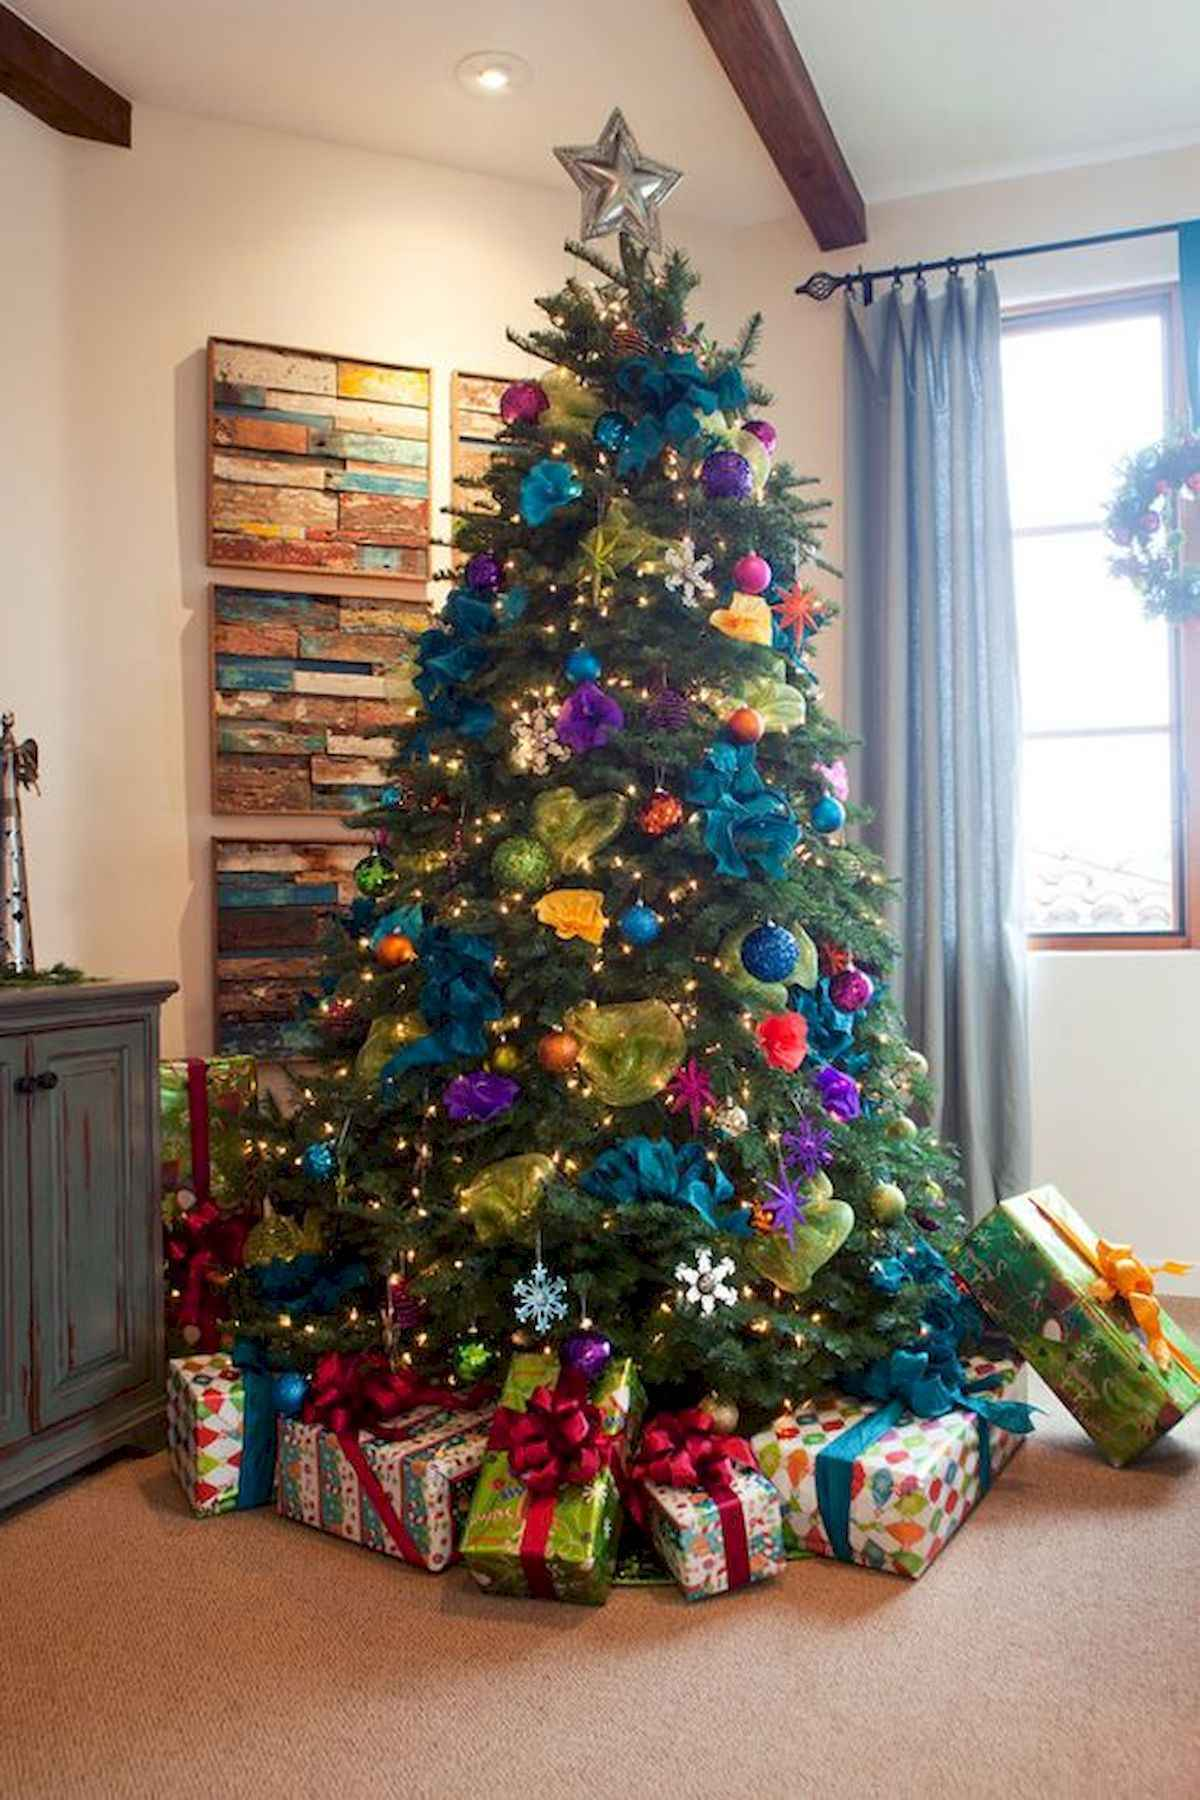 60 awesome christmas tree decorations ideas (45)